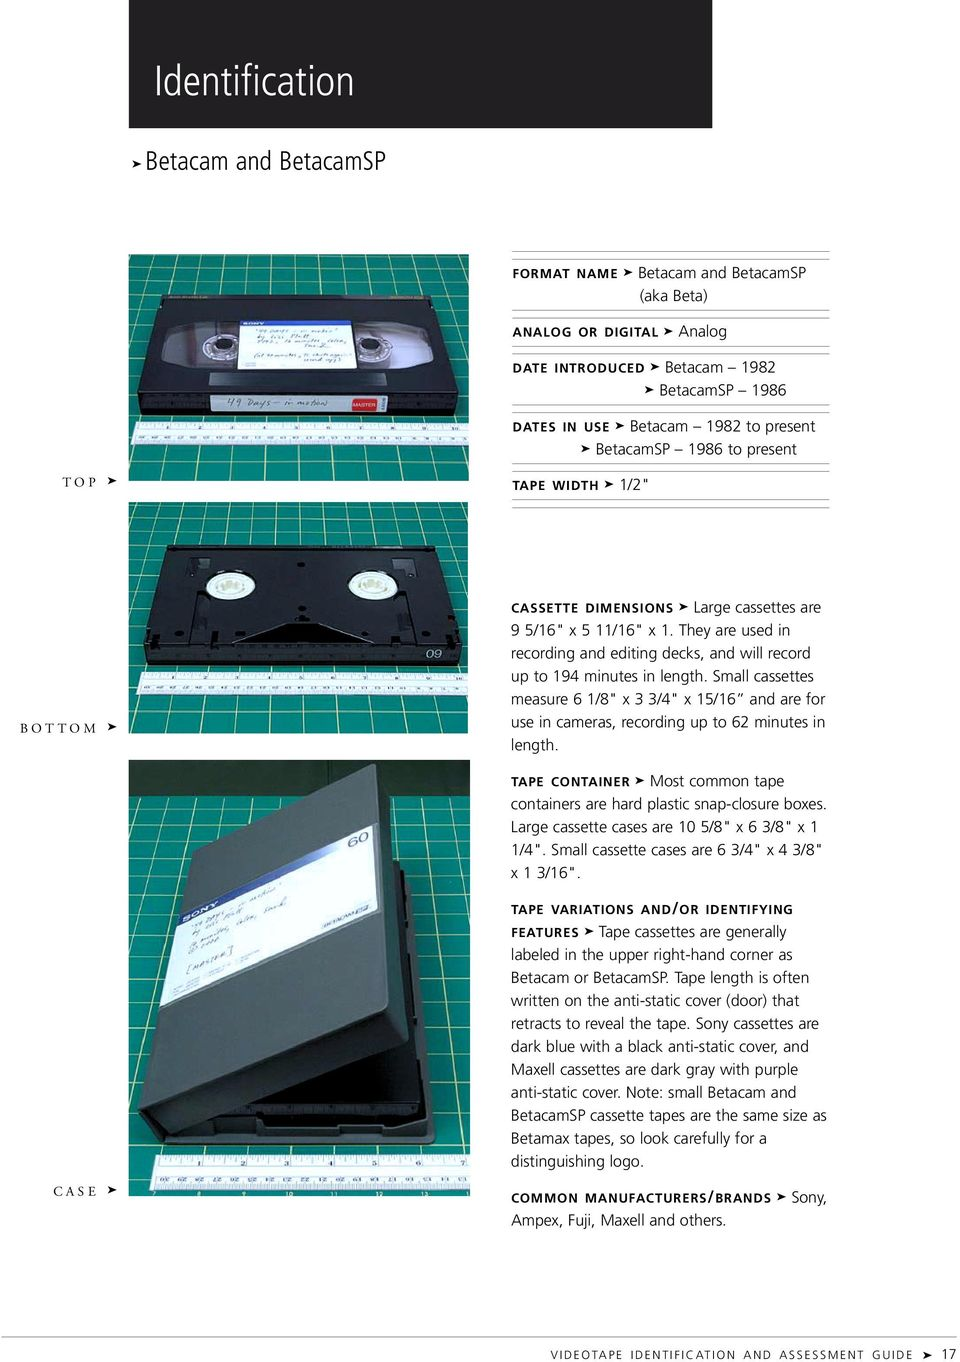 "Small cassettes measure 6 1/8"" x 3 3/4"" x 15/16 and are for use in cameras, recording up to 62 minutes in length. TAPE CONTAINER Most common tape containers are hard plastic snap-closure boxes."